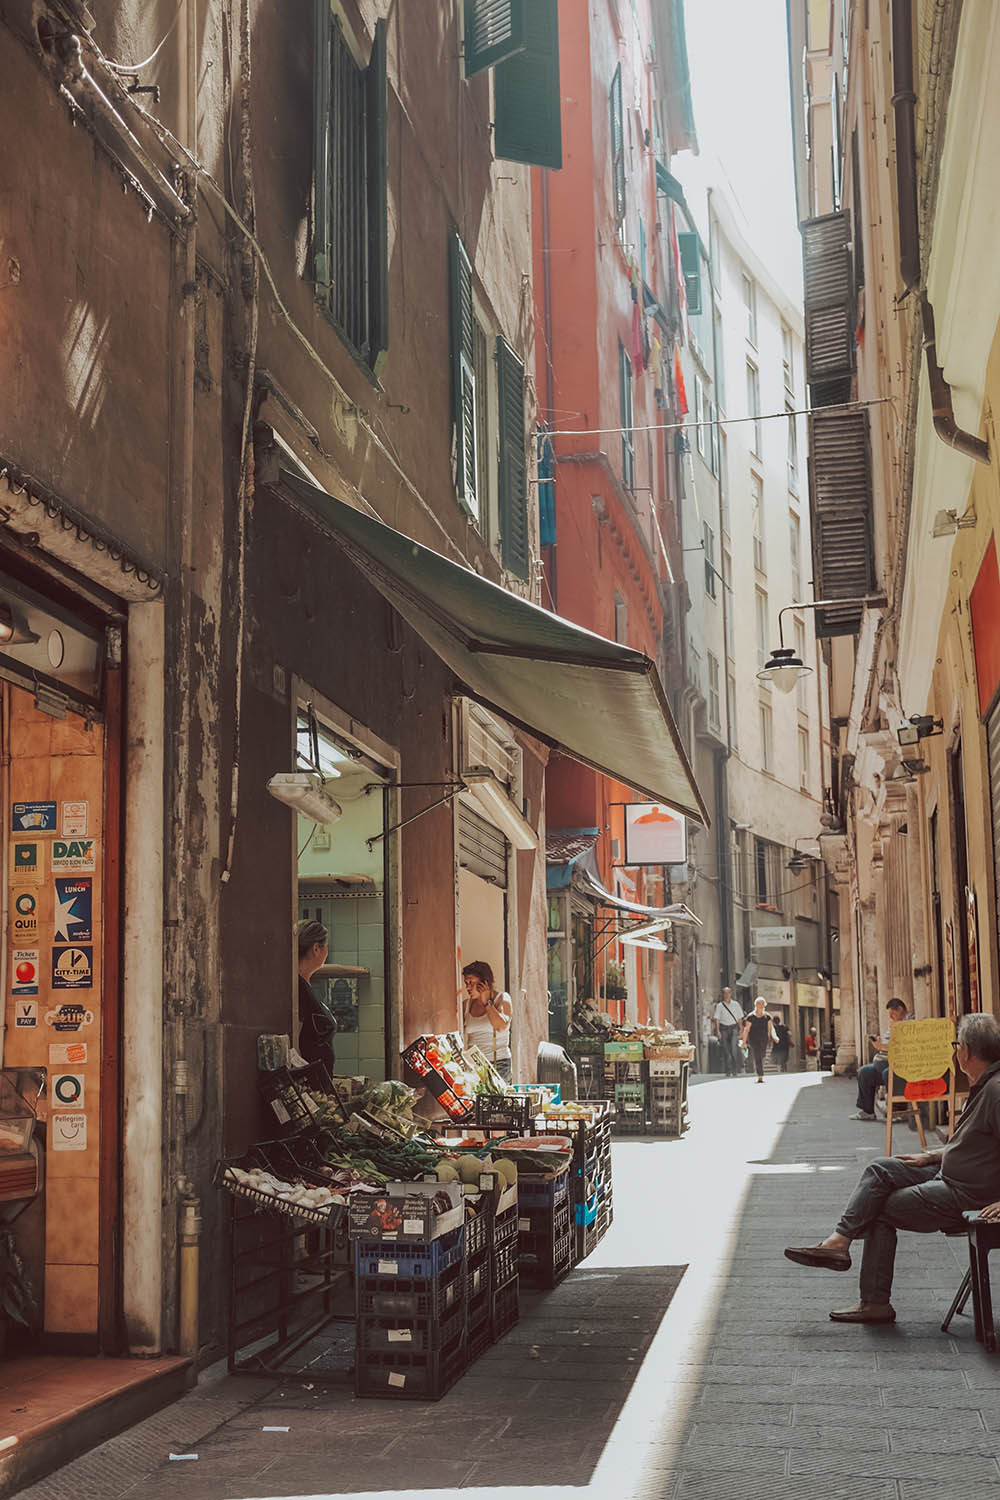 Fun things to do in Genoa - Stroll Via Garibaldi #Italy #Europe